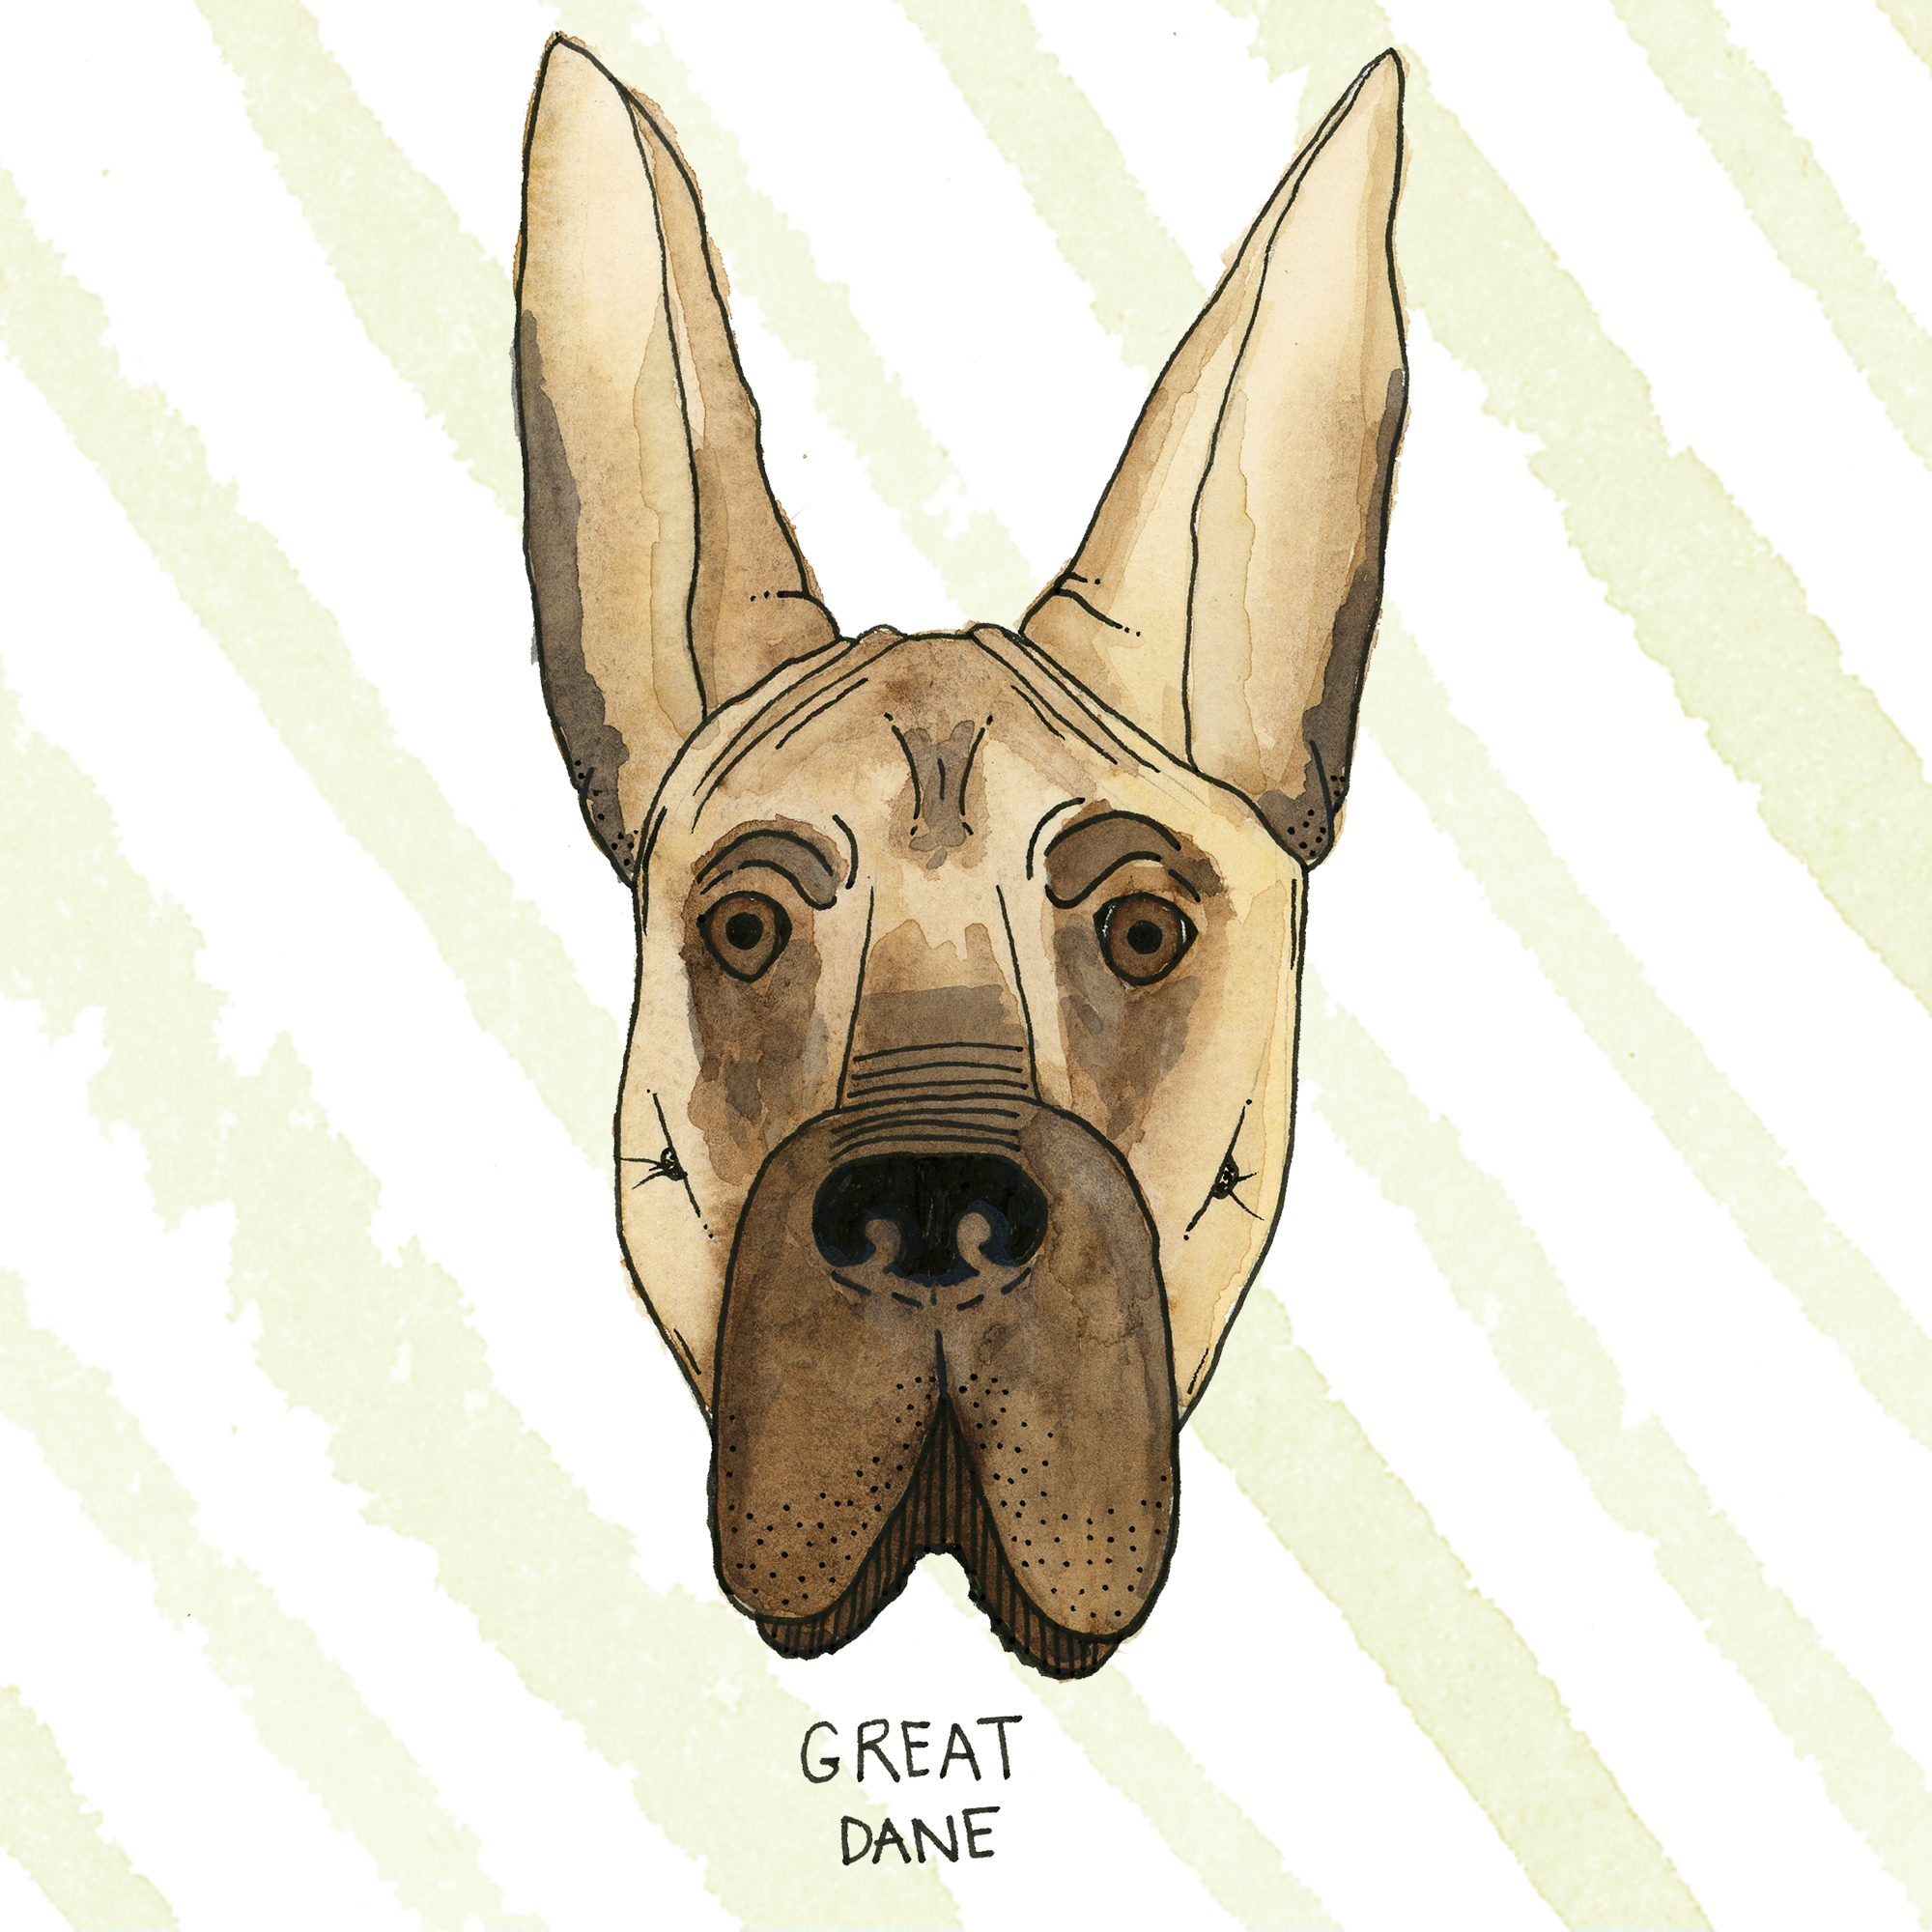 GreatDane.jpg